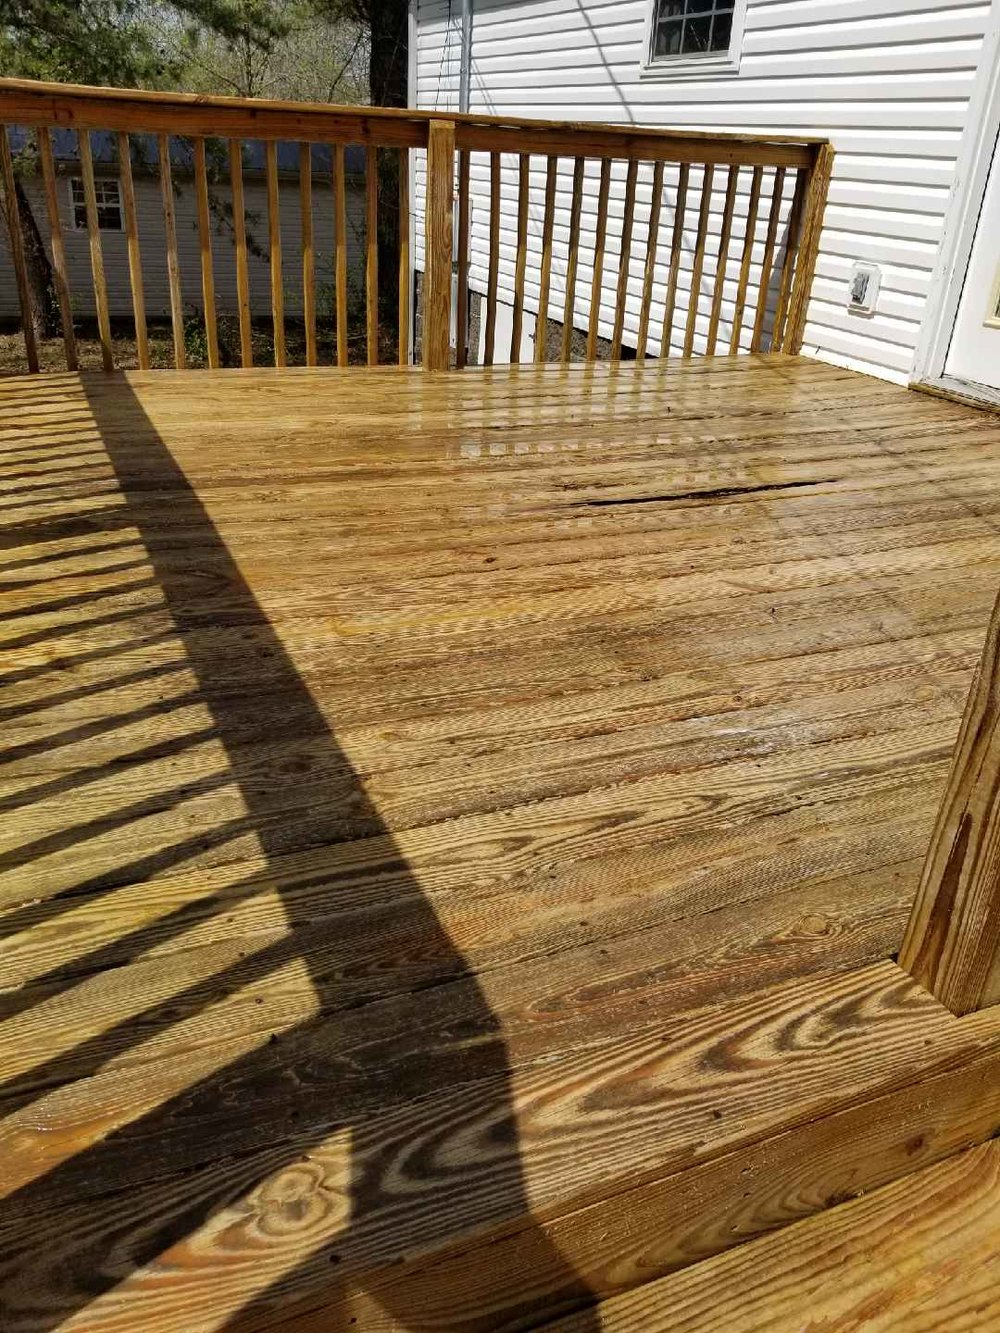 After our deck pressure washing services it looks brand new!